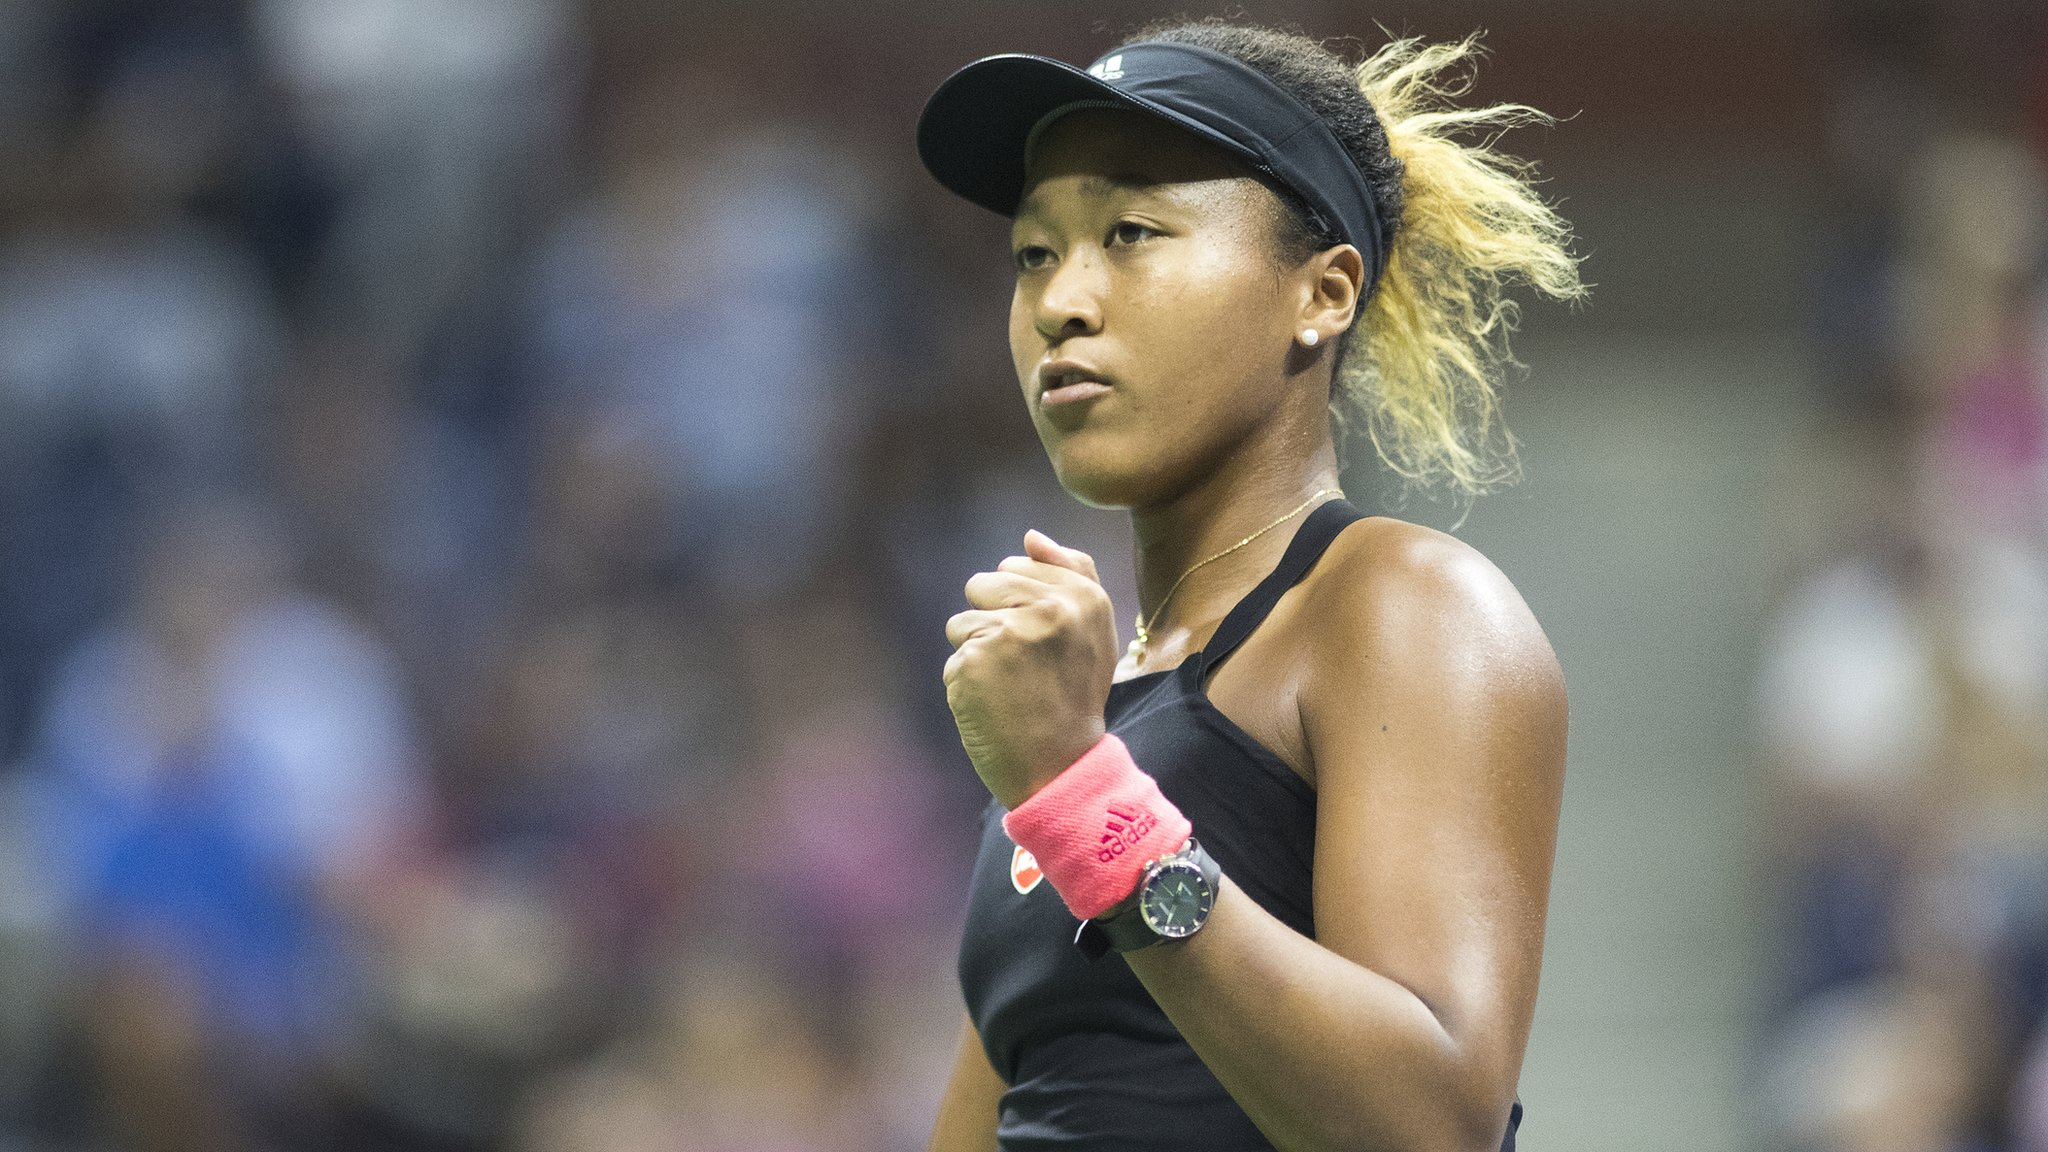 Naomi Osaka beats Dominika Cibulkova in straight sets at Pan Pacific Open